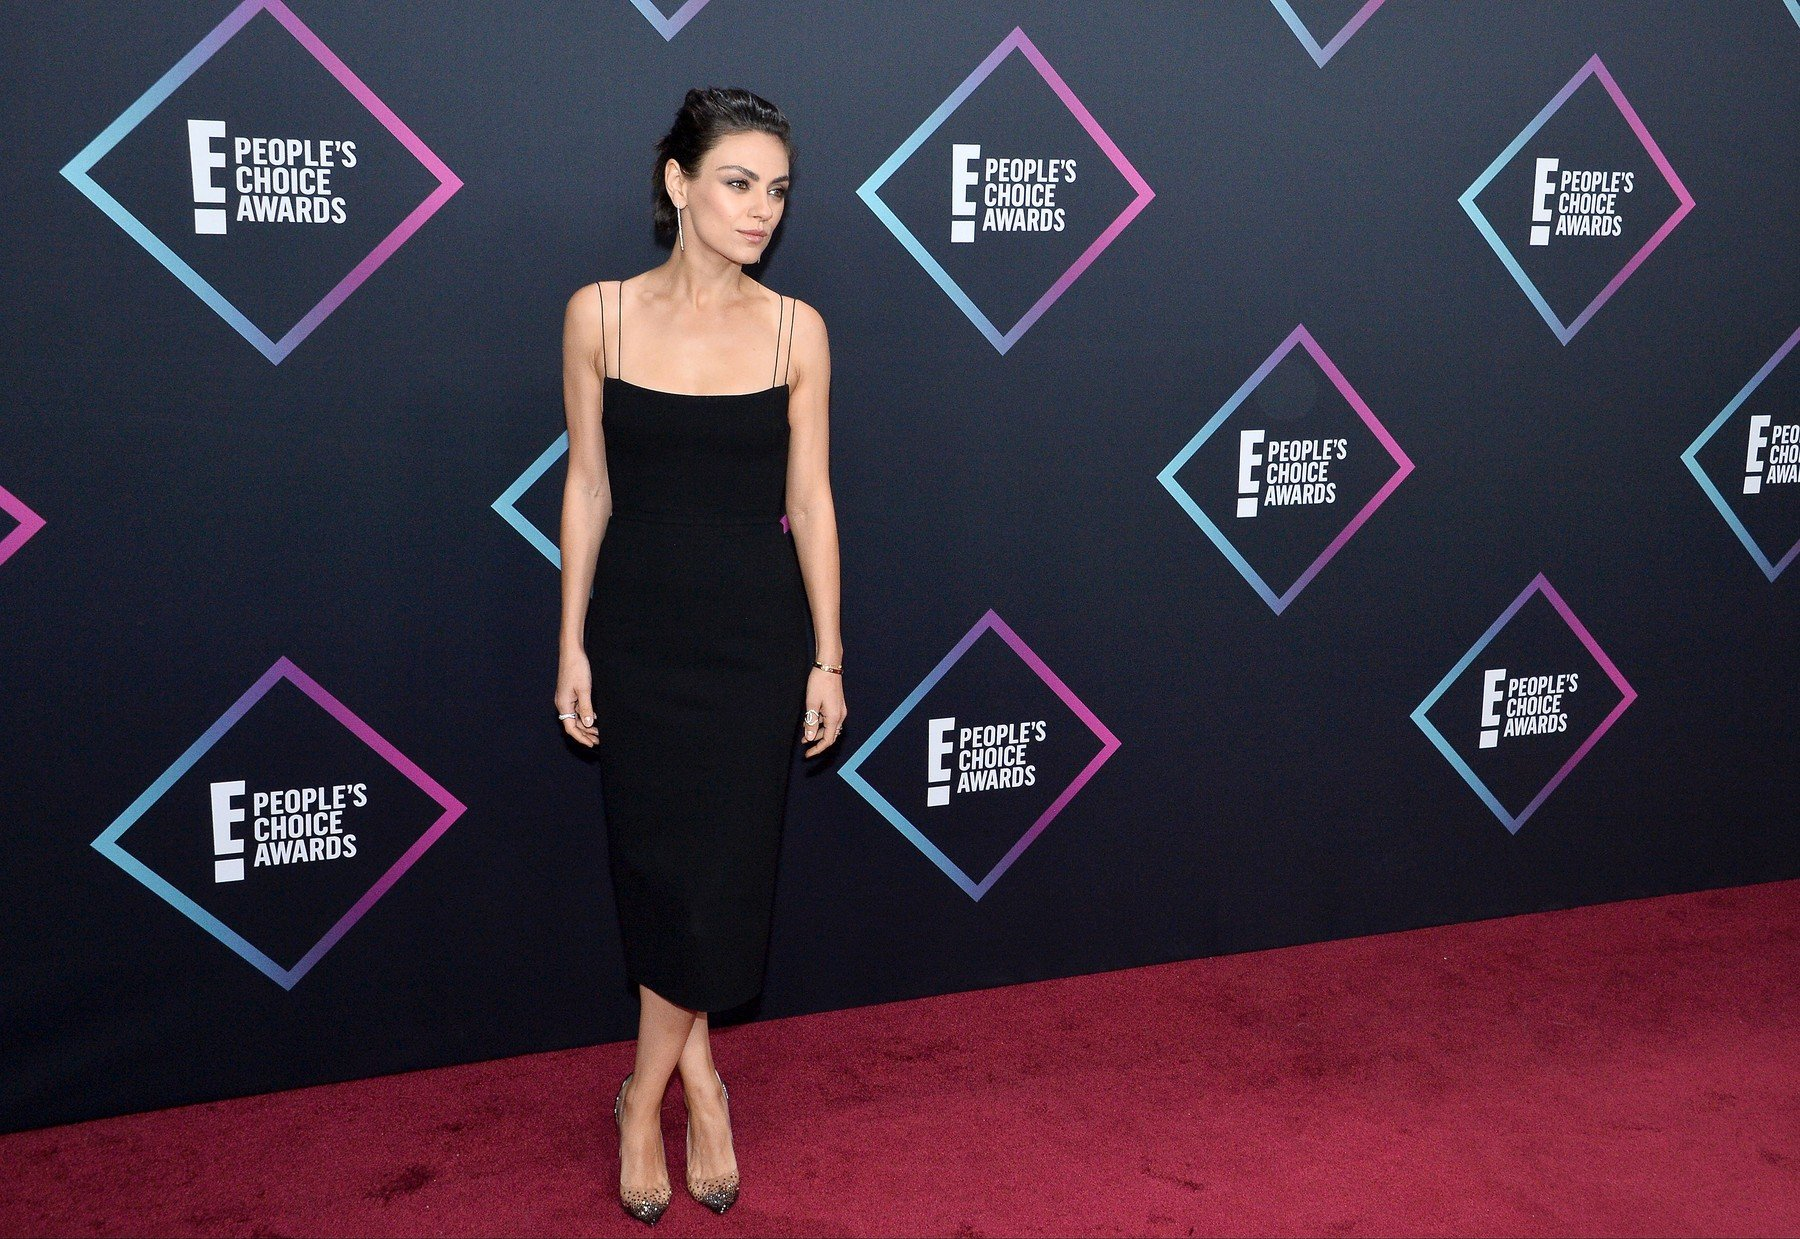 Actress Mila Kunis arrives for the 44th annual E! People's Choice Awards at the Barker Hangar in Santa Monica, California on November 11, 2018.  Photo by /UPI, Image: 395482952, License: Rights-managed, Restrictions: , Model Release: no, Credit line: Profimedia, UPI